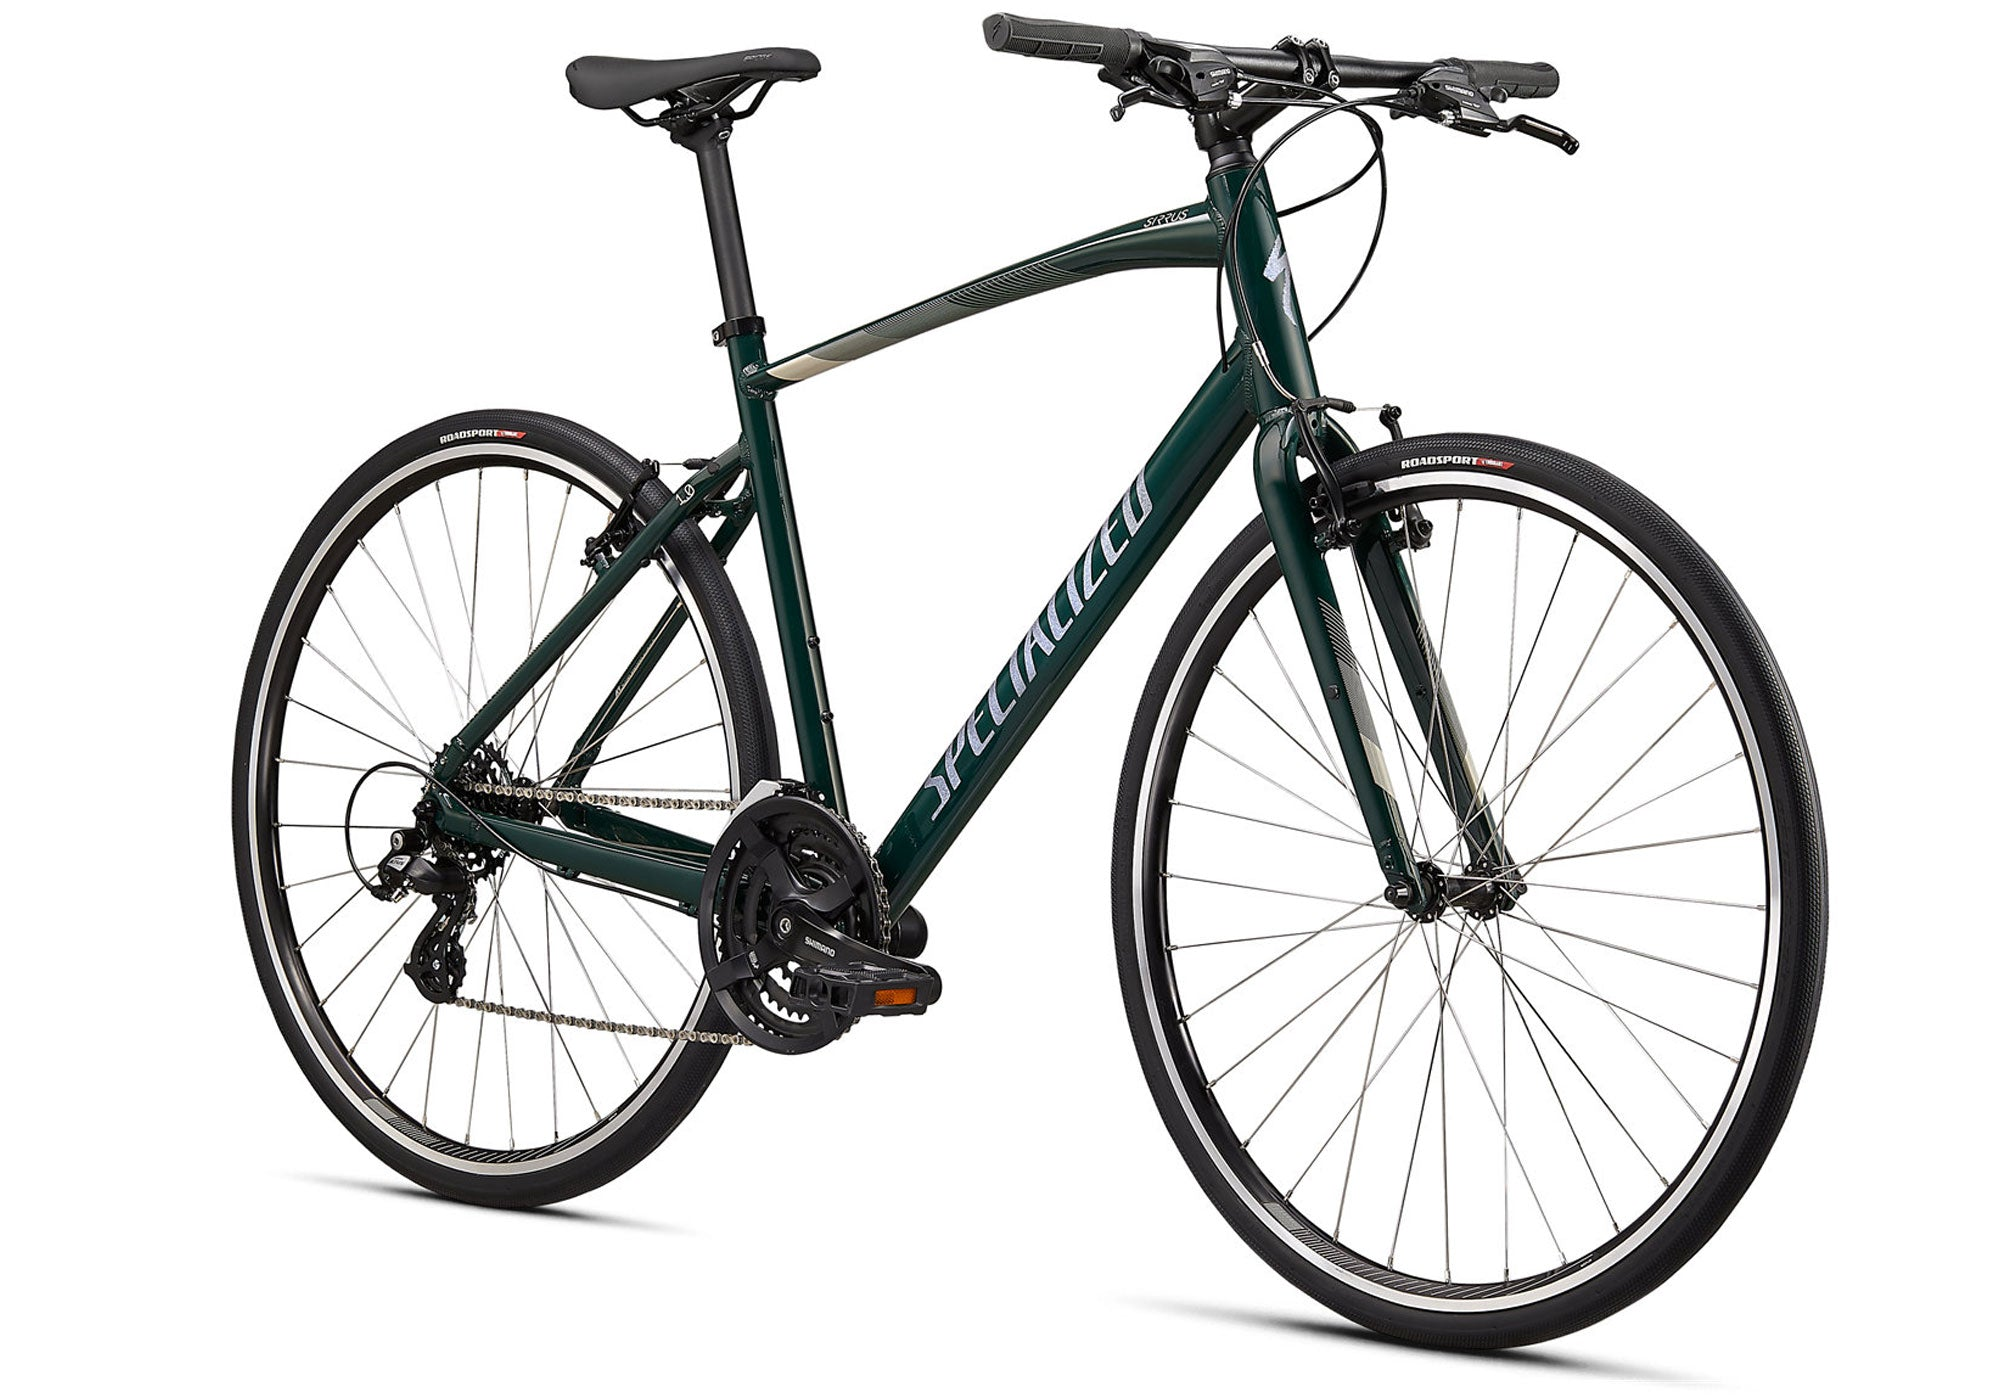 2021 Specialized Sirrus 1.0, Gloss Forest Green, Unisex Fitness Bike, Woolys Wheels Sydney Australia